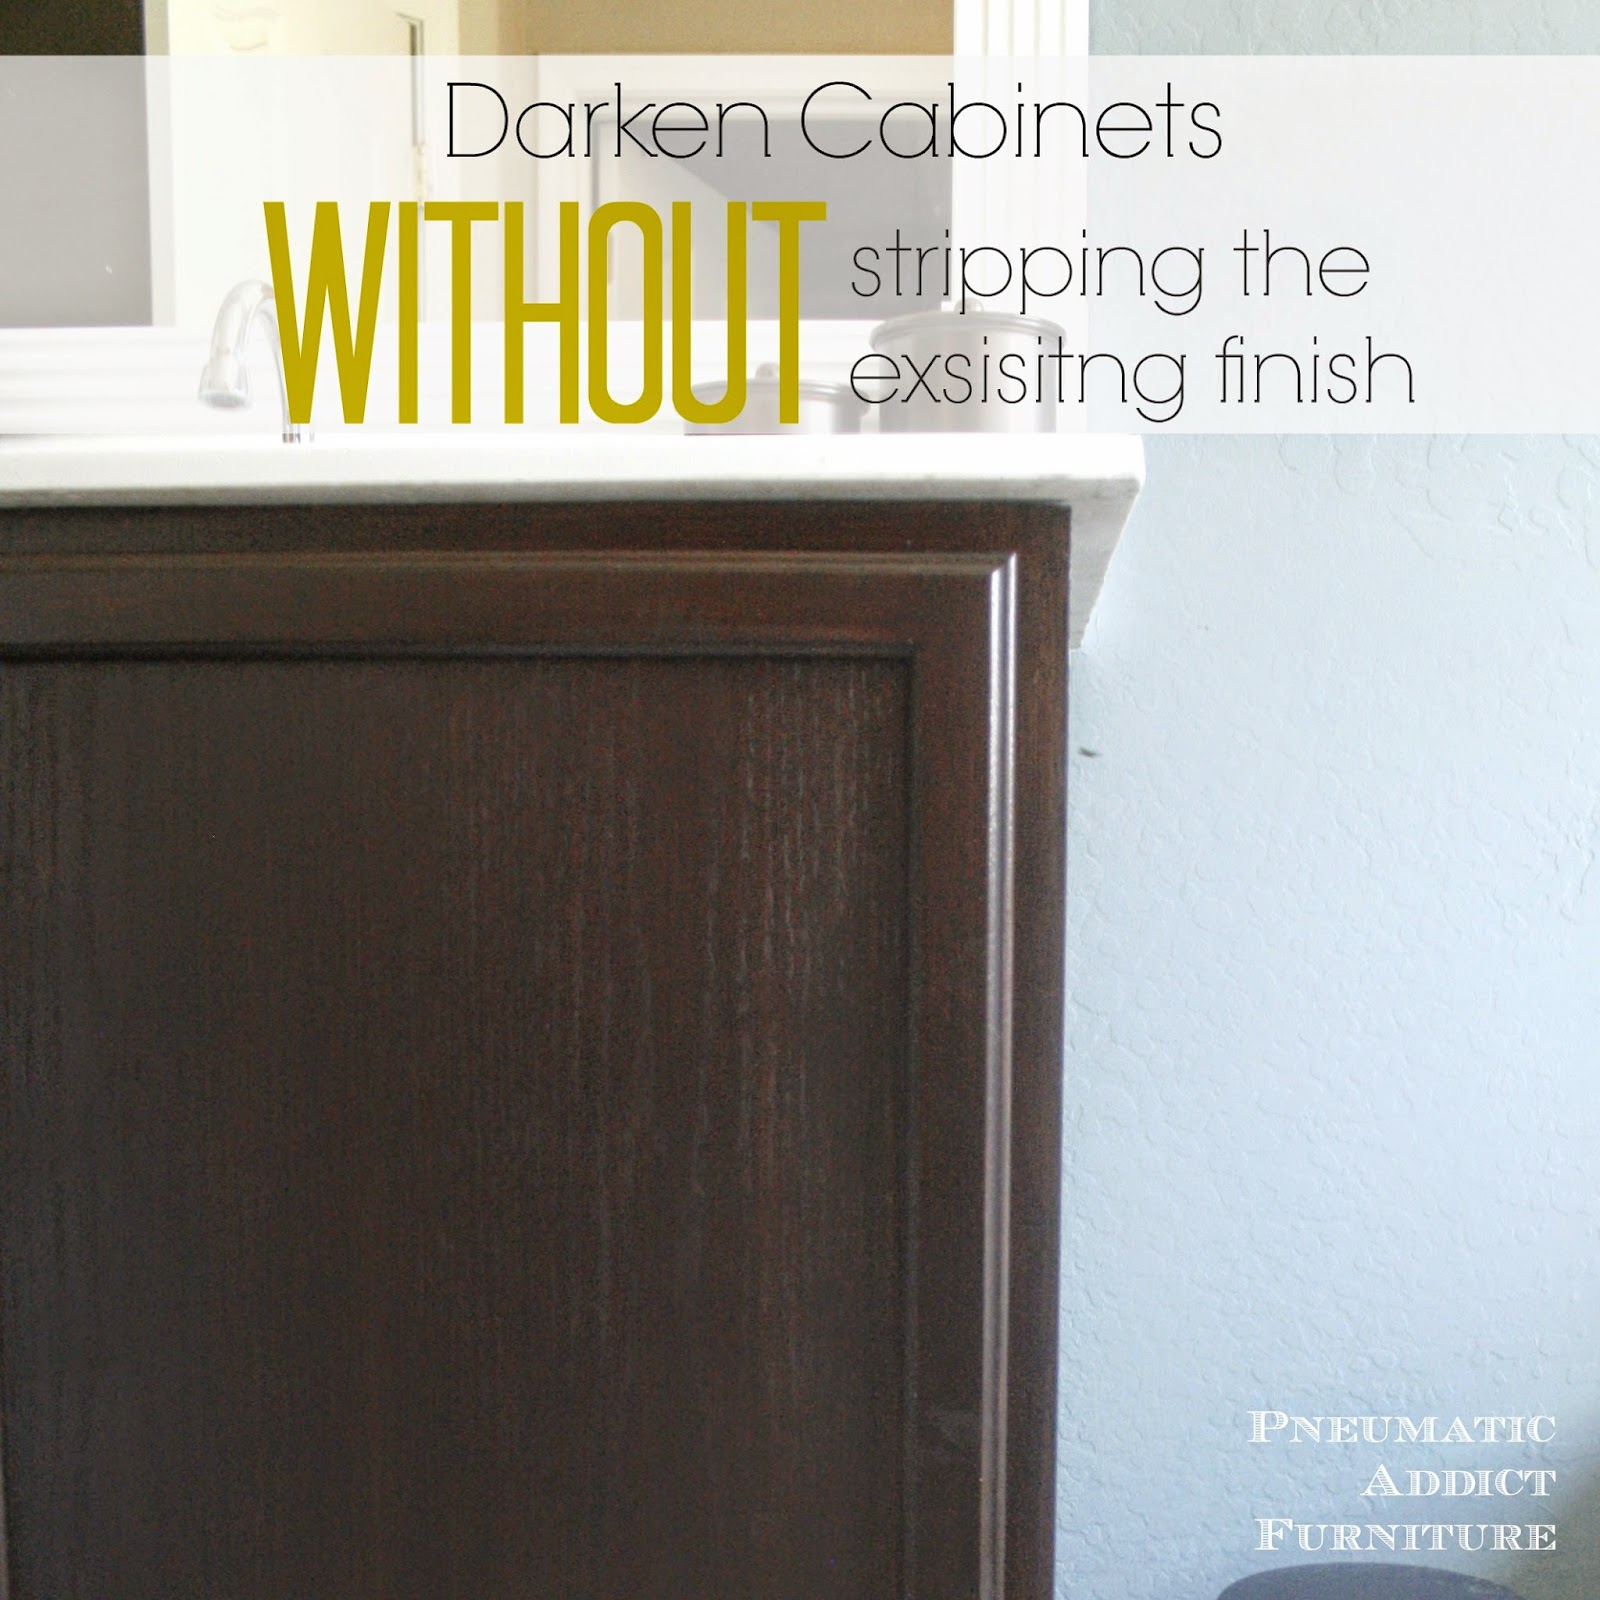 refinishing oak cabinets without sanding kitchen cabinet stain Darken Cabinets WITHOUT Stripping the Existing Finish